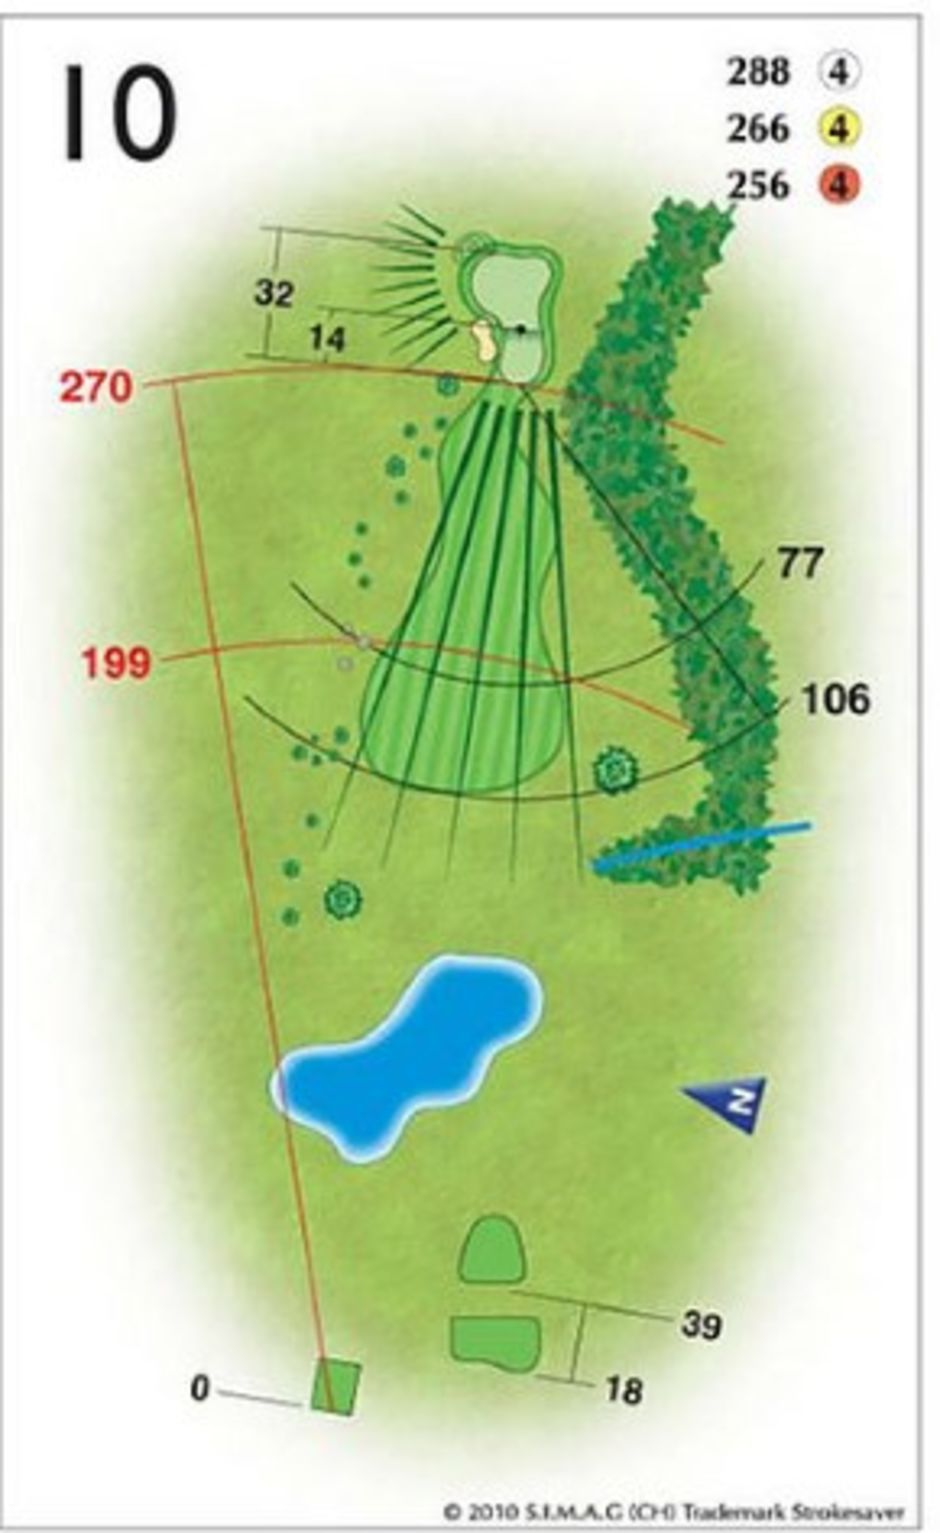 10 Downes Crediton Golf Glub Hole Diagram Html5 Video For Android By Easyhtml5videocom V18